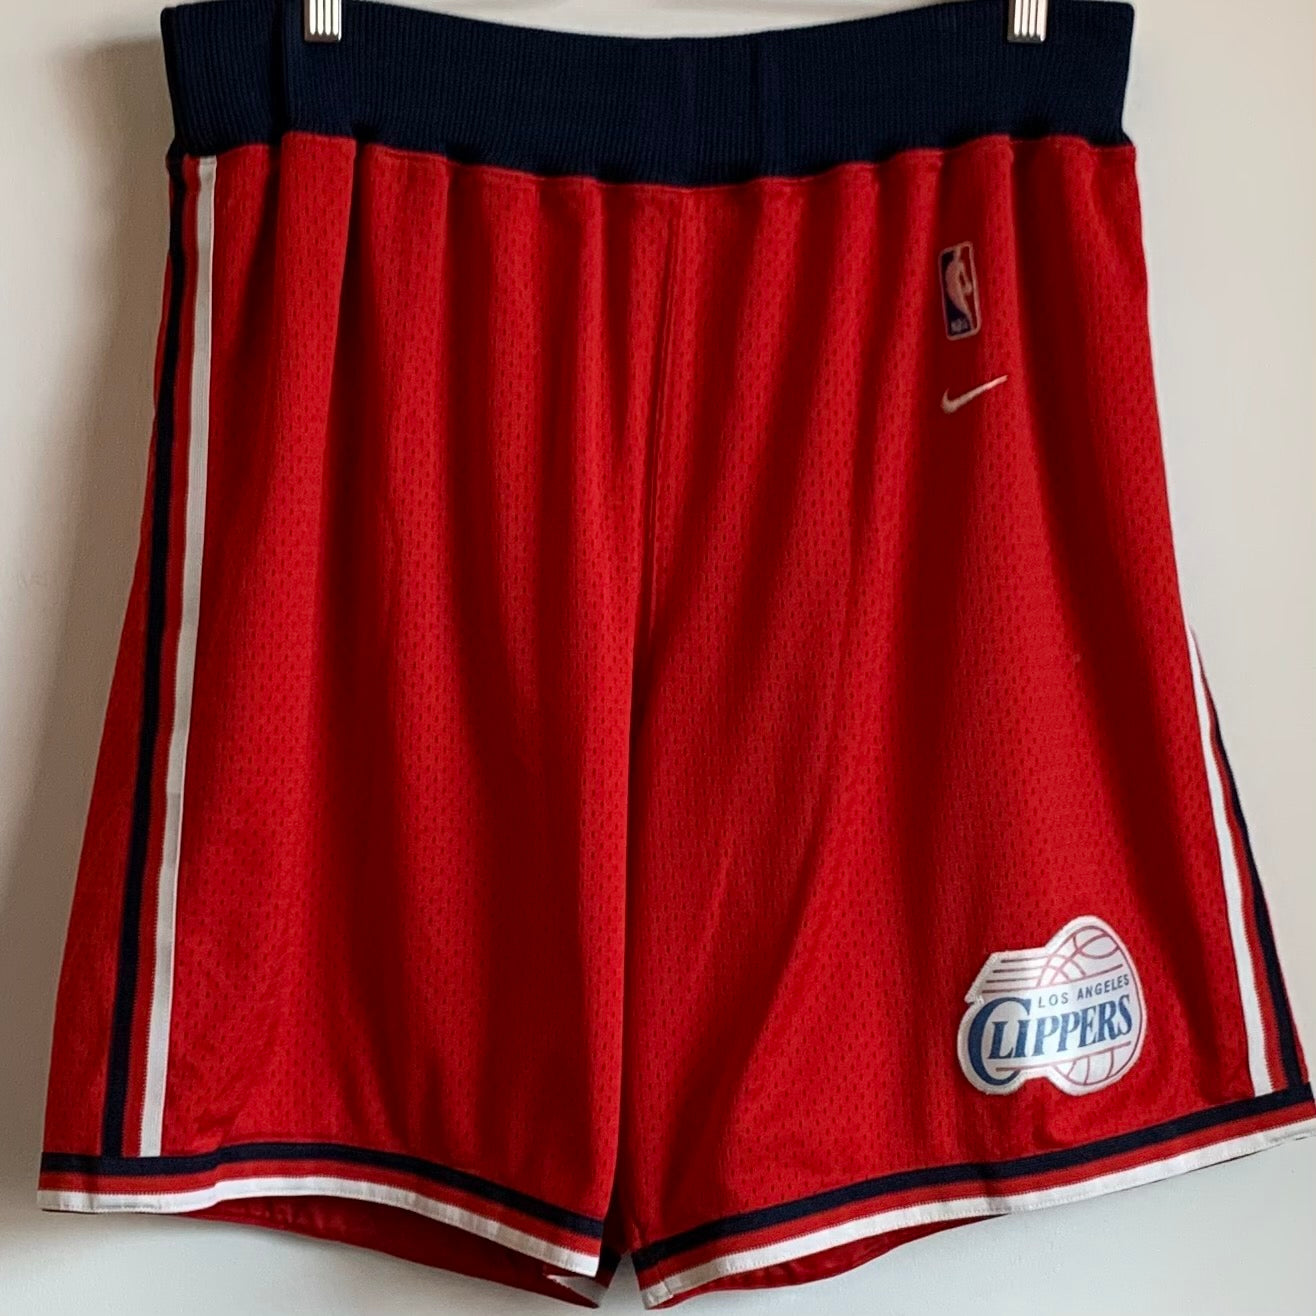 Nike Los Angeles Clippers '83 Rewind Swingman Basketball Shorts